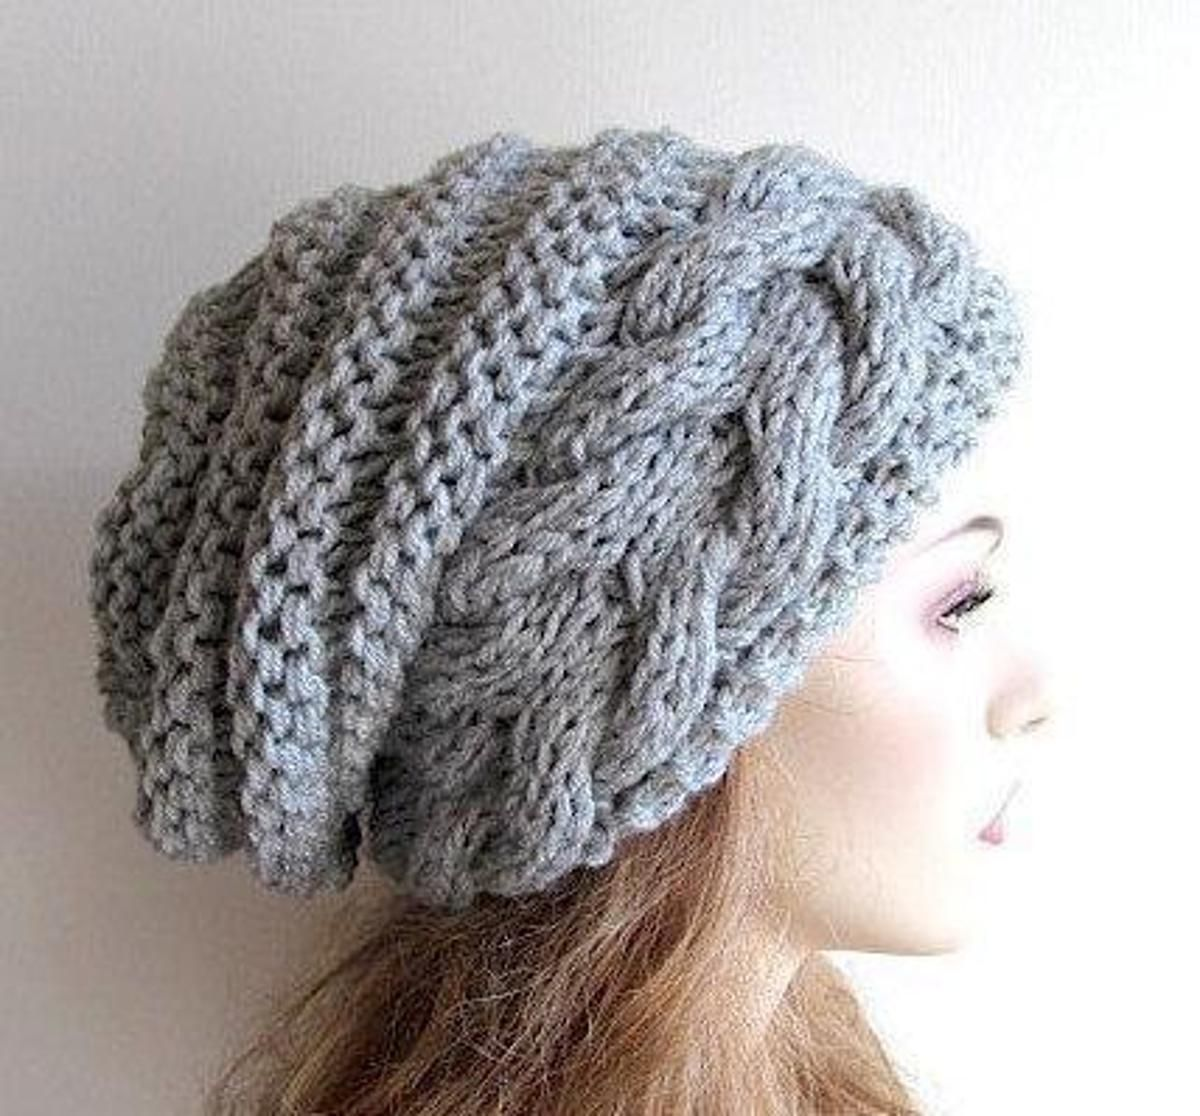 Braided Cable Beehive Hat Pattern | Beehive, Cable and Patterns